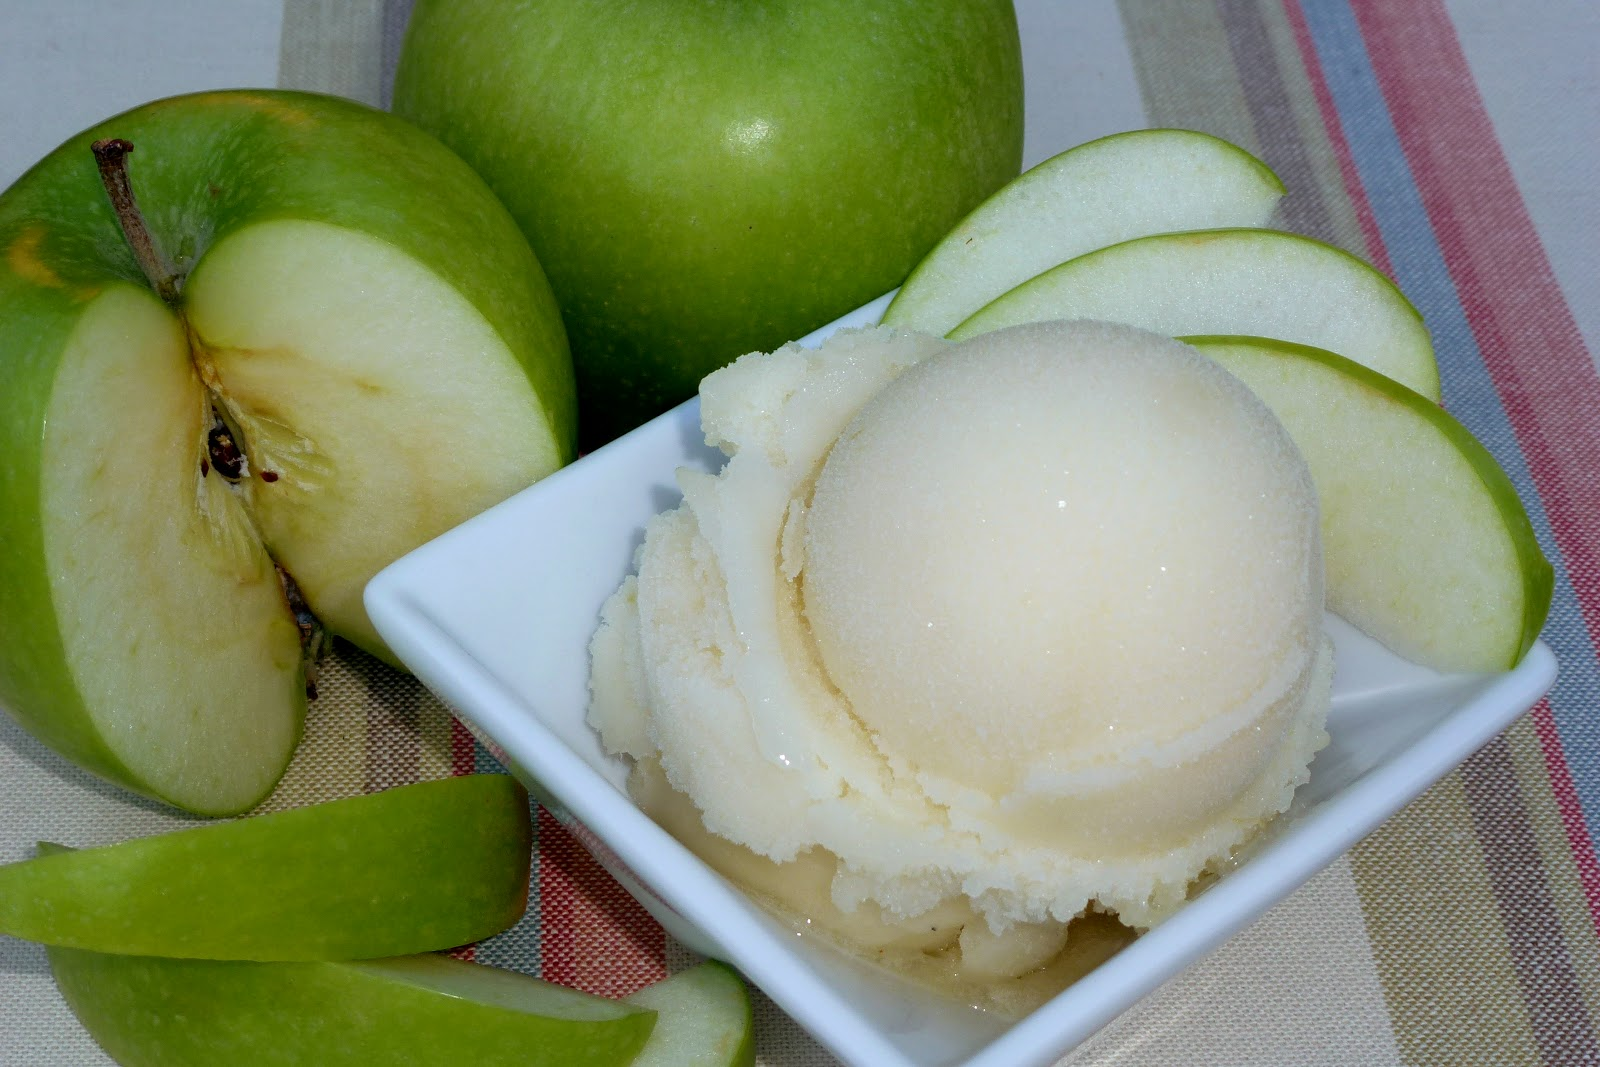 Savory Table: Green Apple Sauvignon Blanc Sorbet